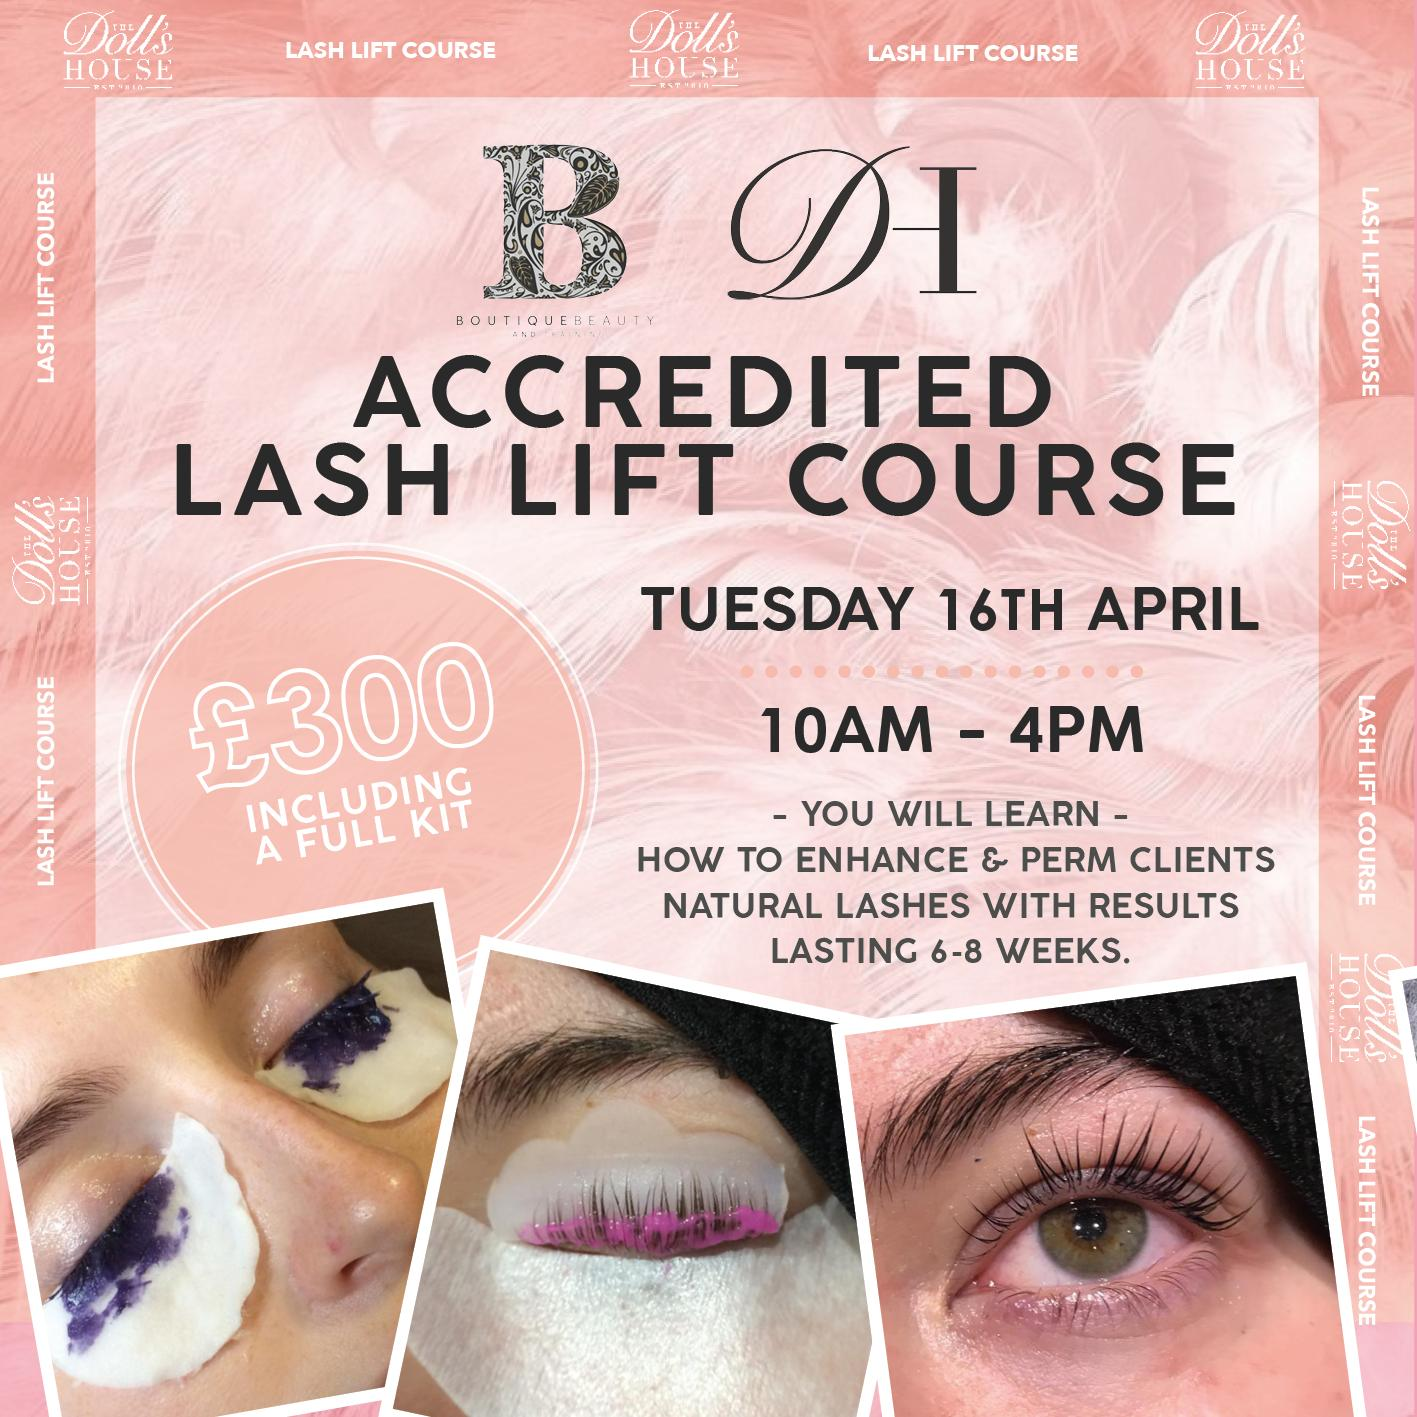 FULLY ACCREDITED LASH LIFT COURSE